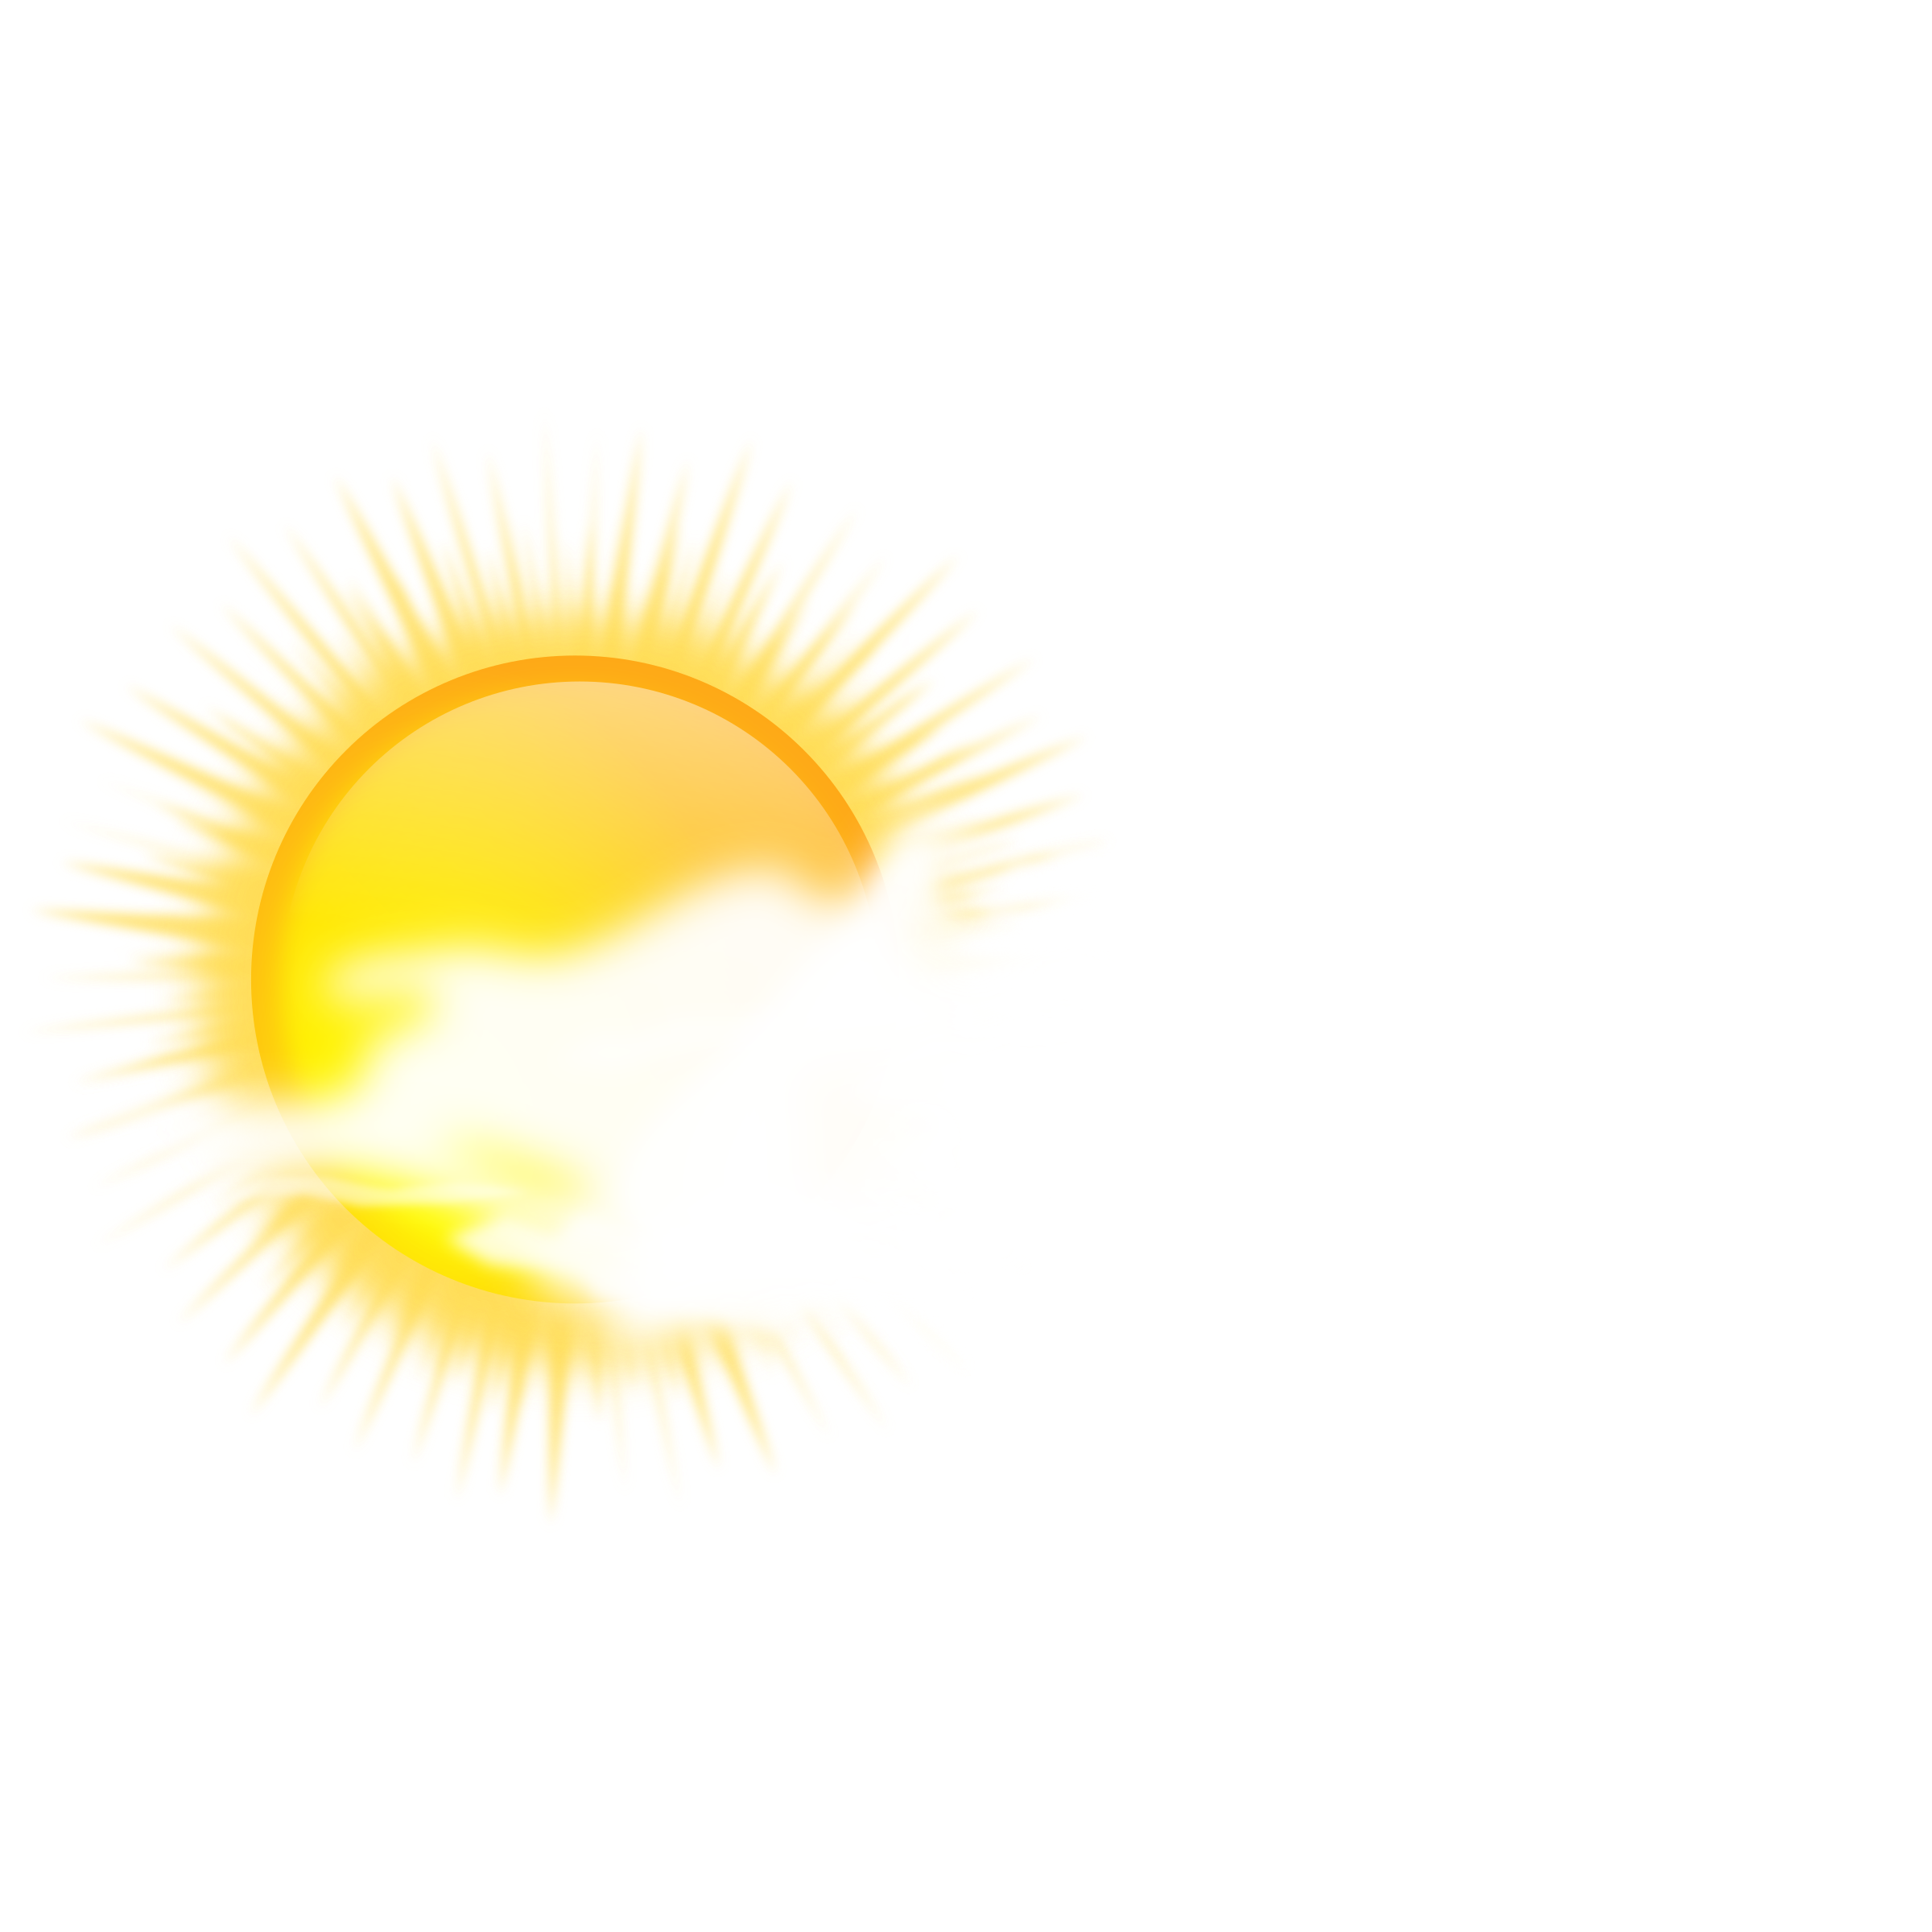 weather icon - sunny to cloudy by gnokii